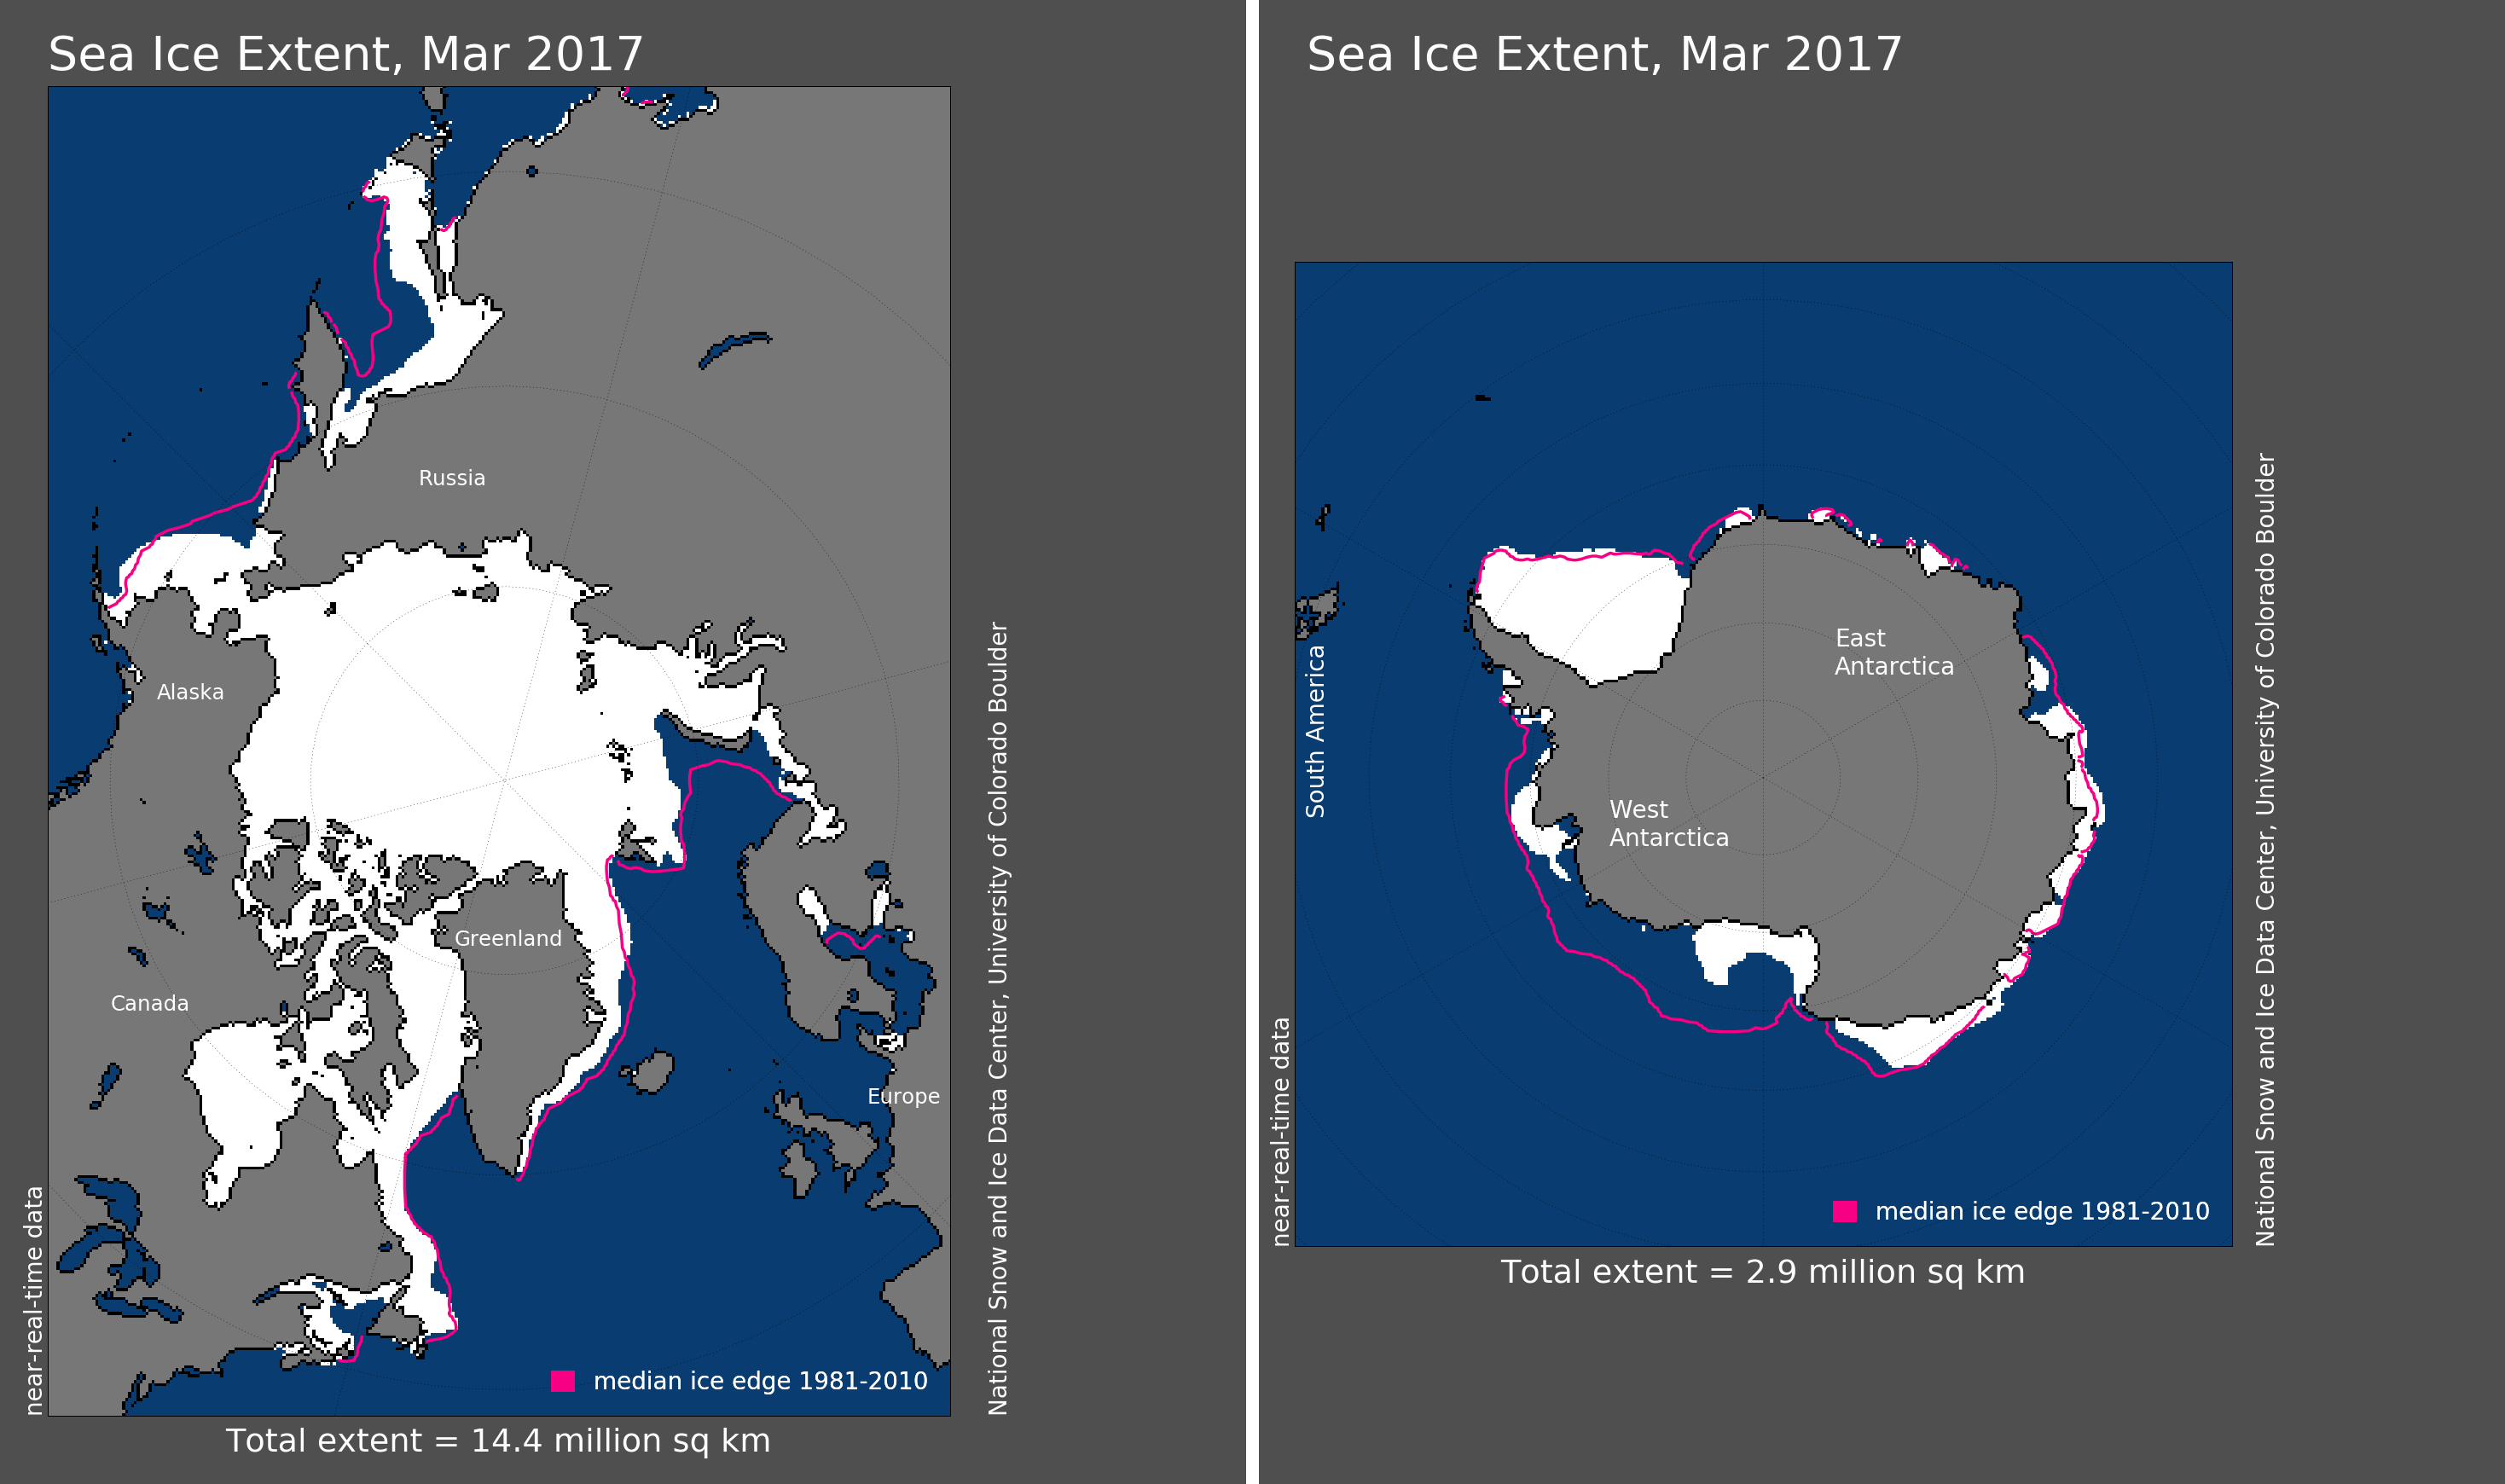 Maps of Arctic and Antarctic sea ice extent in March 2017